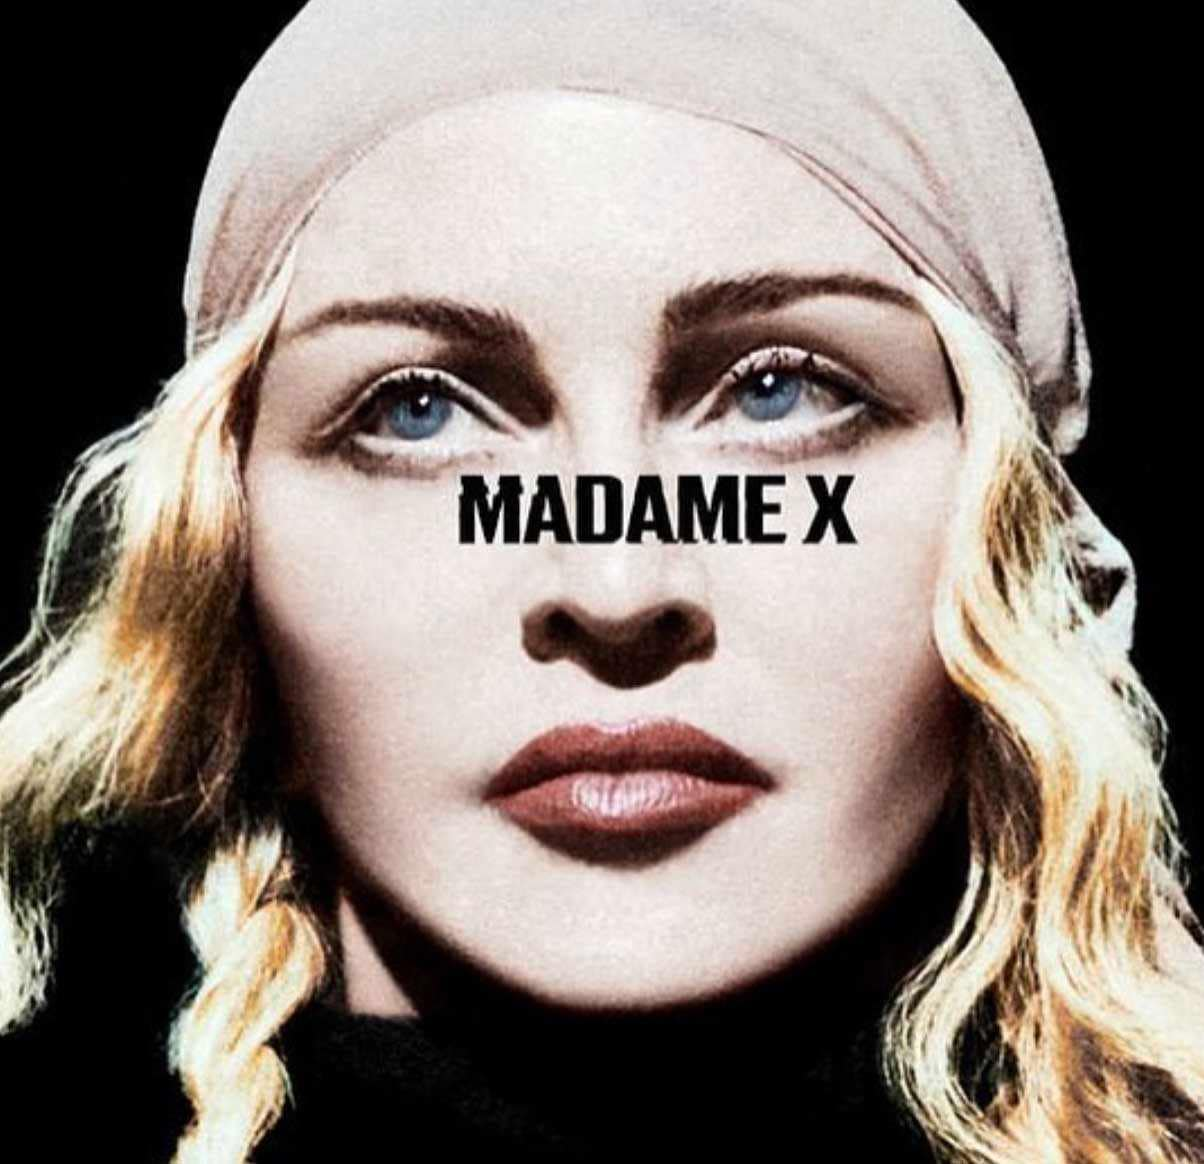 new album 2019 madonna madamex